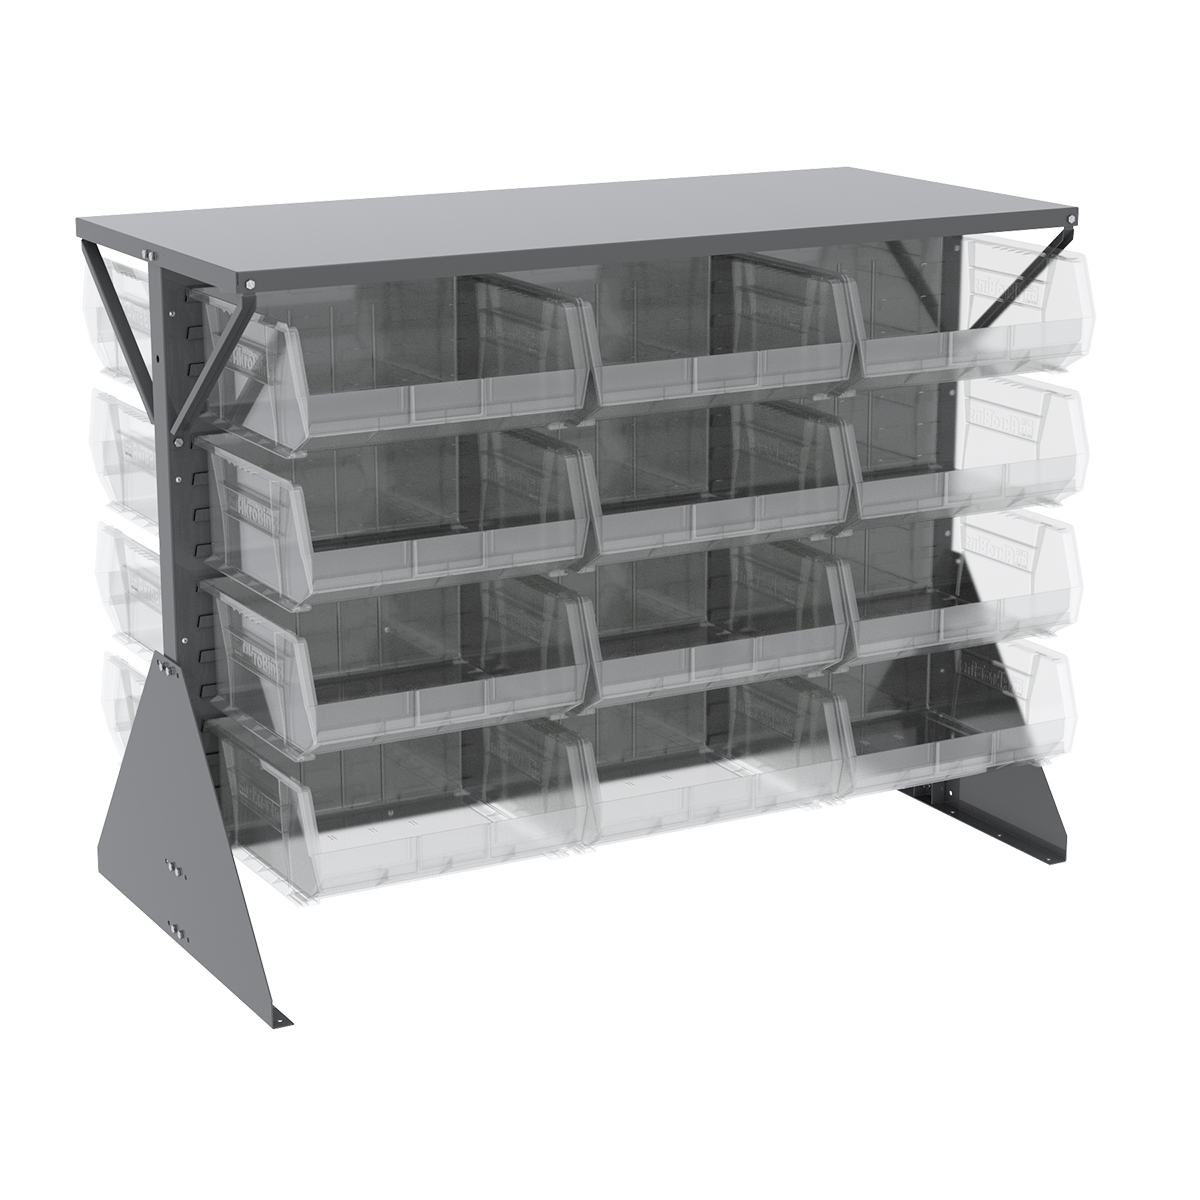 Item DISCONTINUED by Manufacturer.  Low Profile Floor Rack, 2-Sided, Shelf w/ 24 AkroBins, Gray/Clear (30606GY250SC).  This item sold in carton quantities of 1.